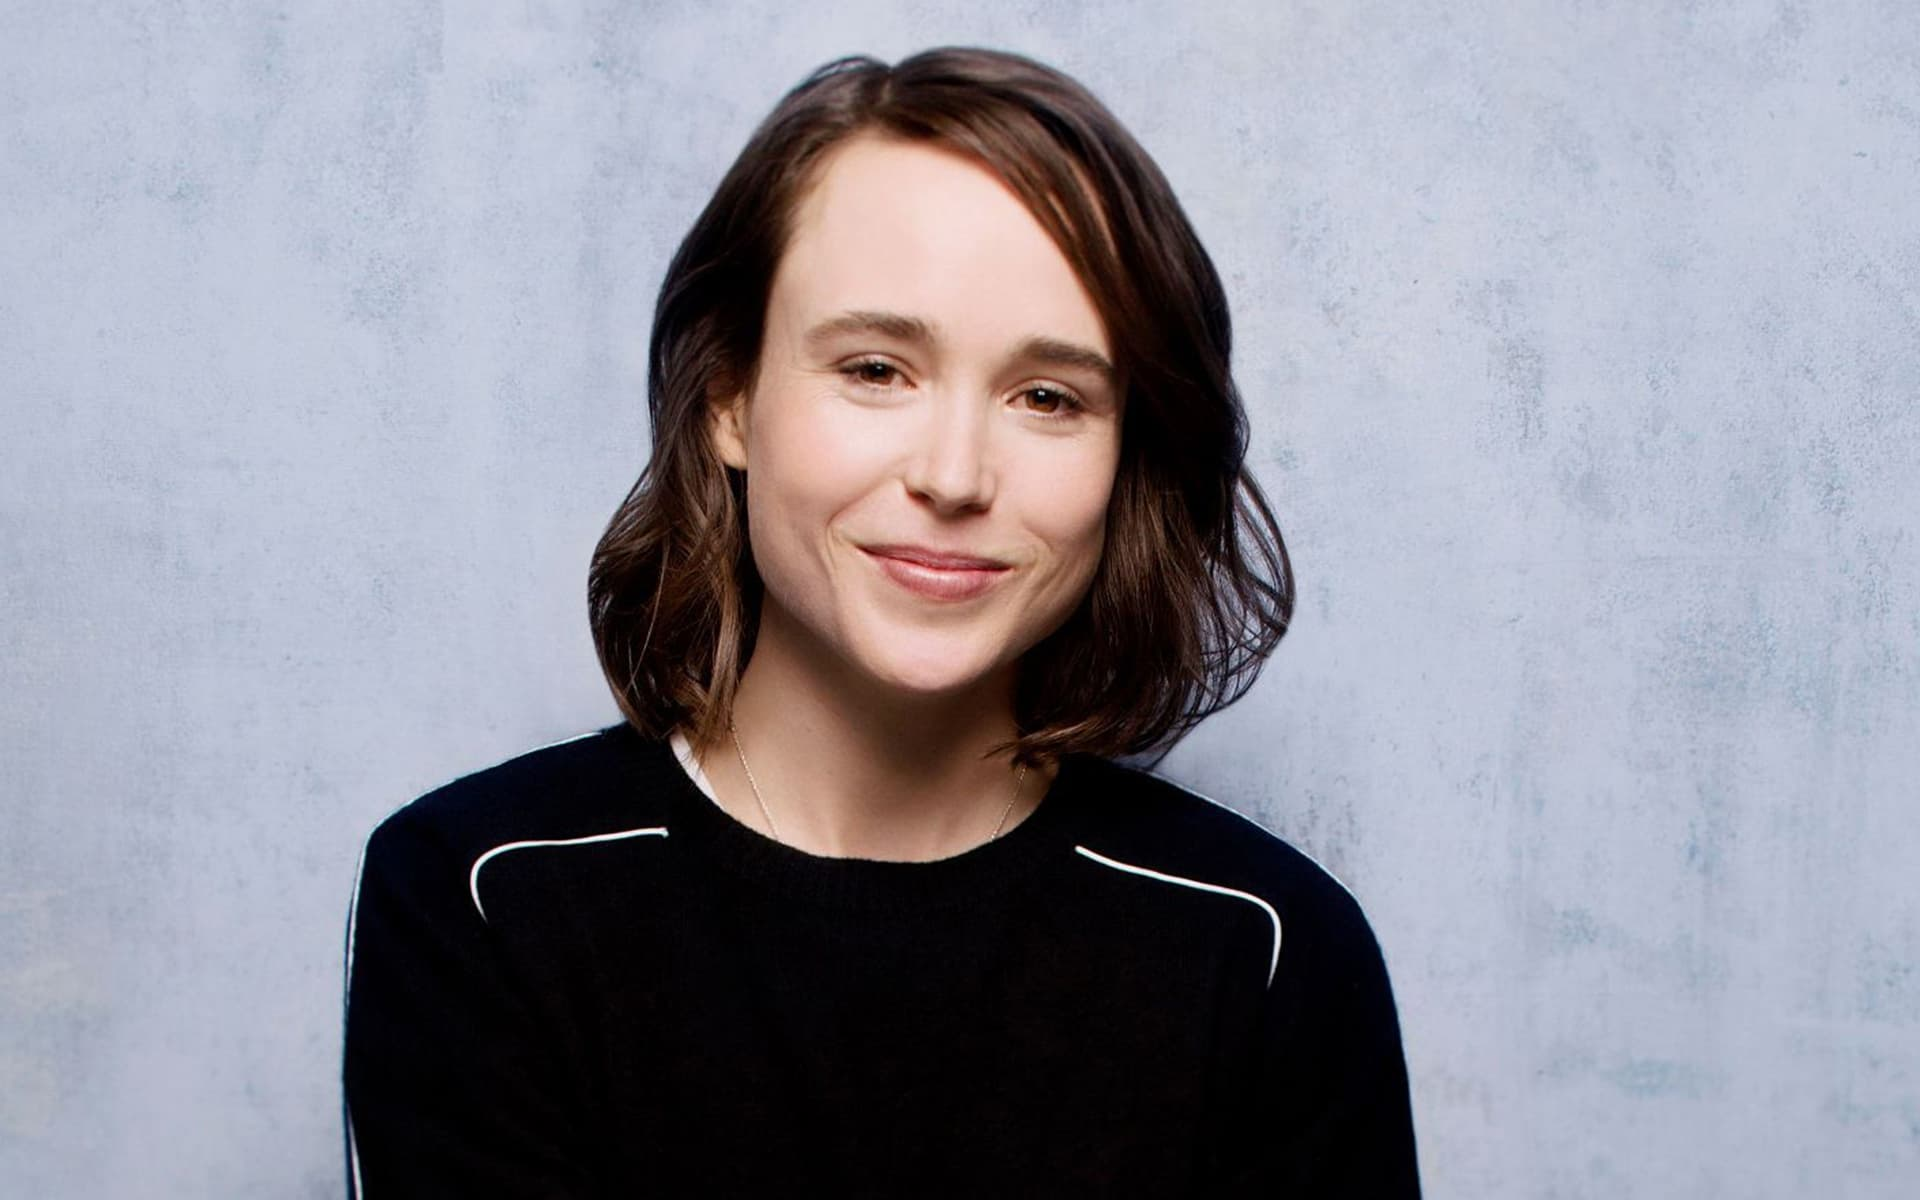 Cute Pics For Wallpaper Hd 17 Ellen Page Wallpapers High Quality Resolution Download